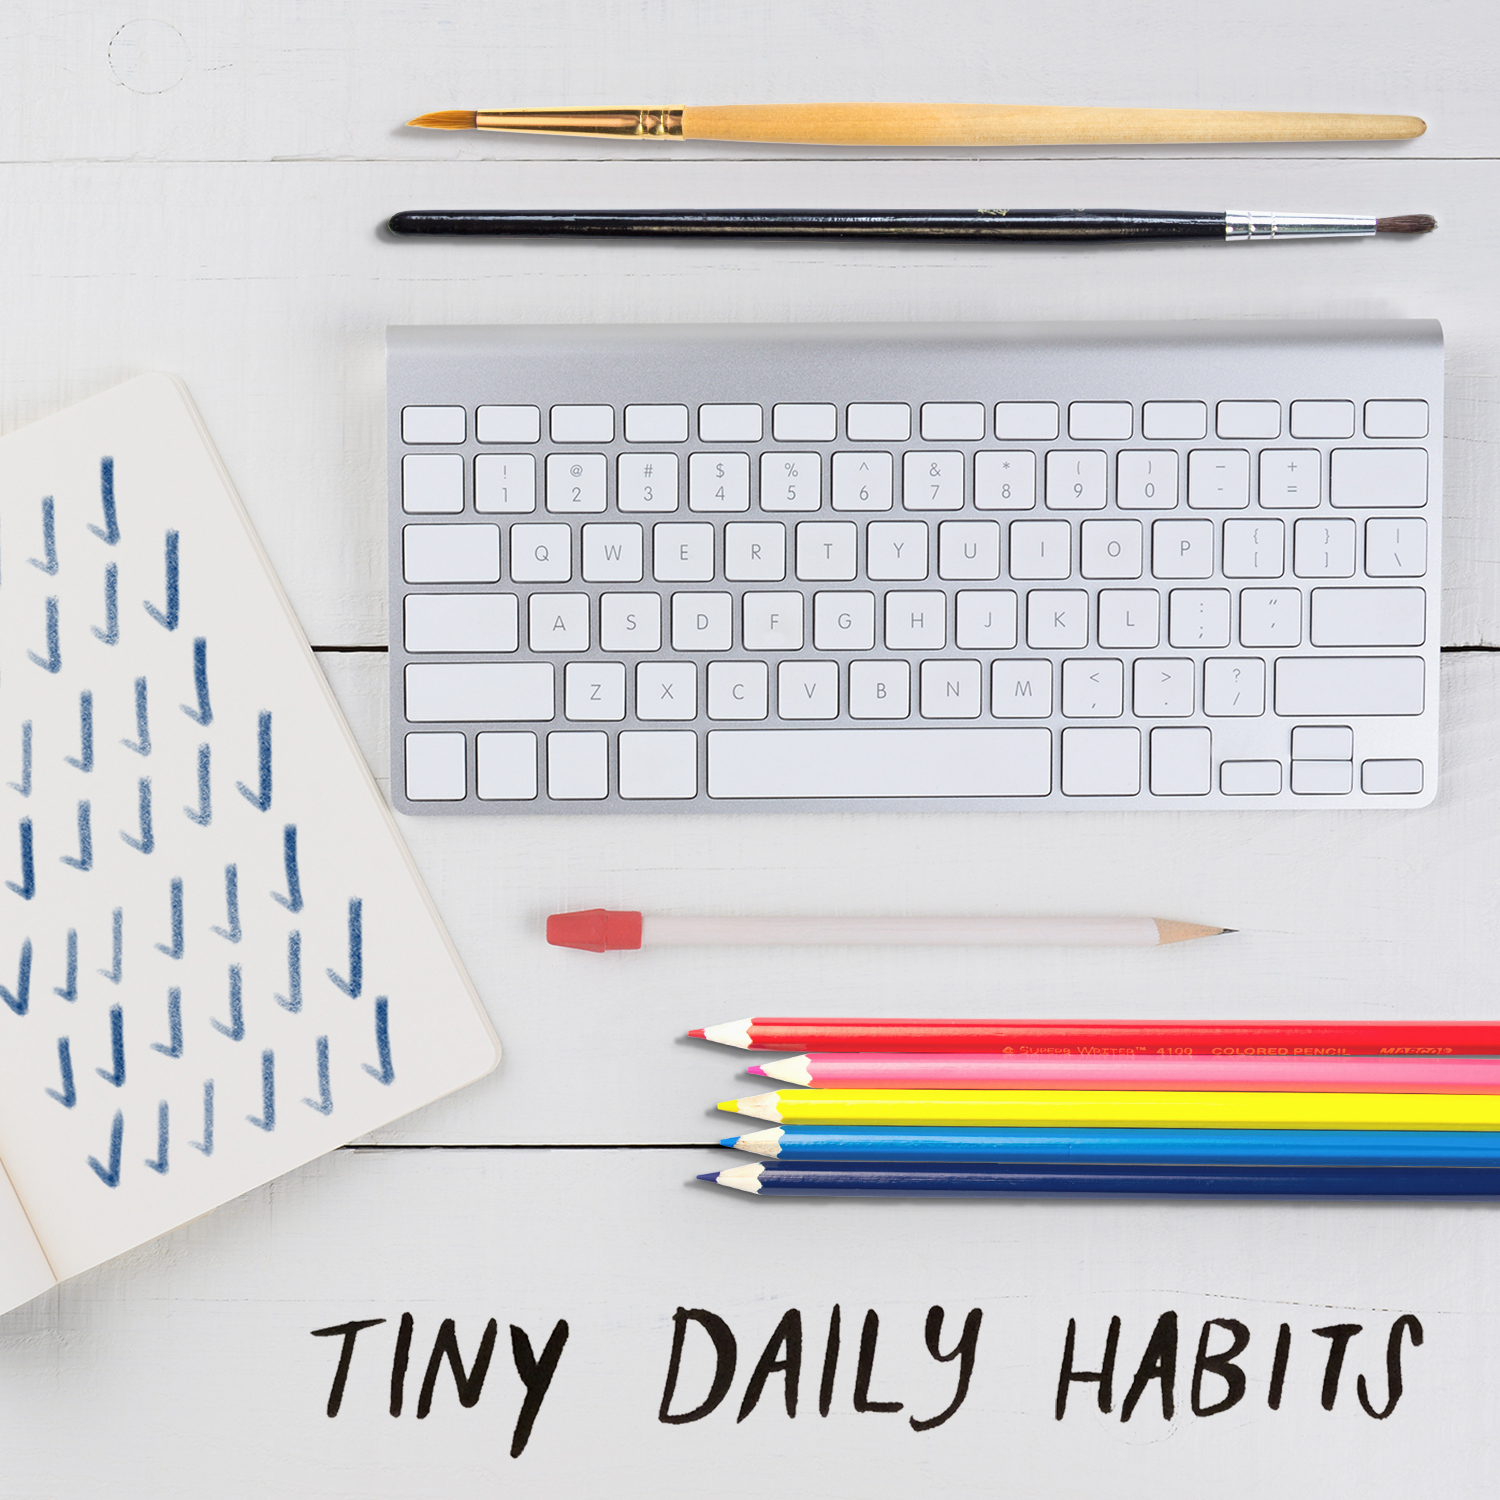 tiny daily habits by tammie bennett